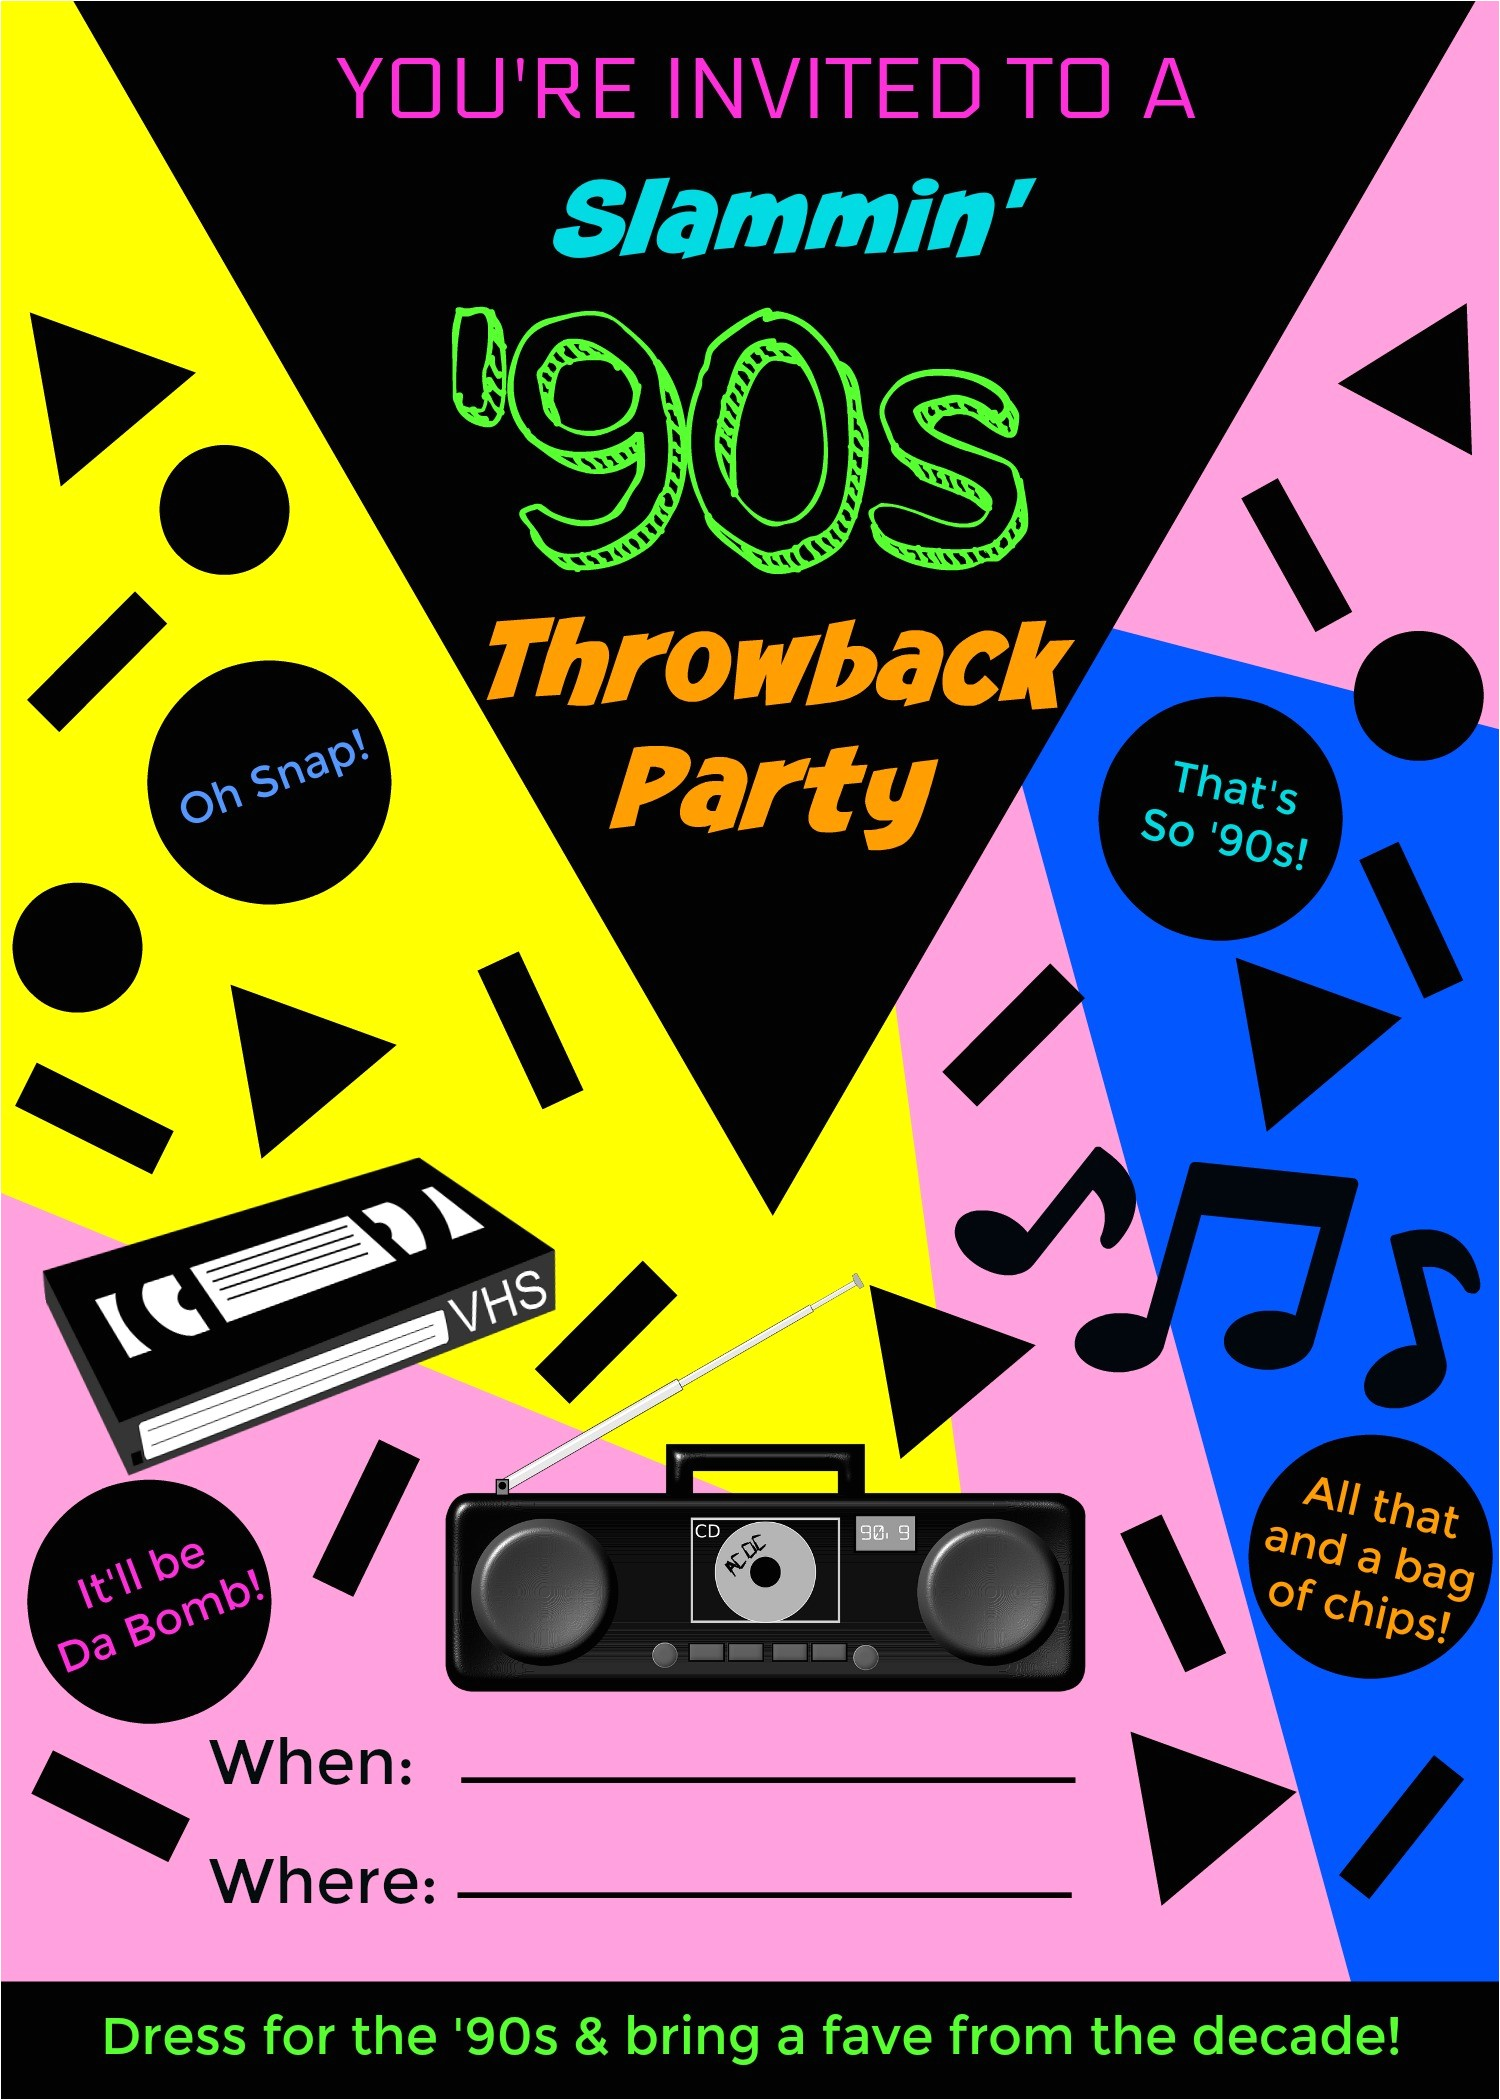 90s throwback party